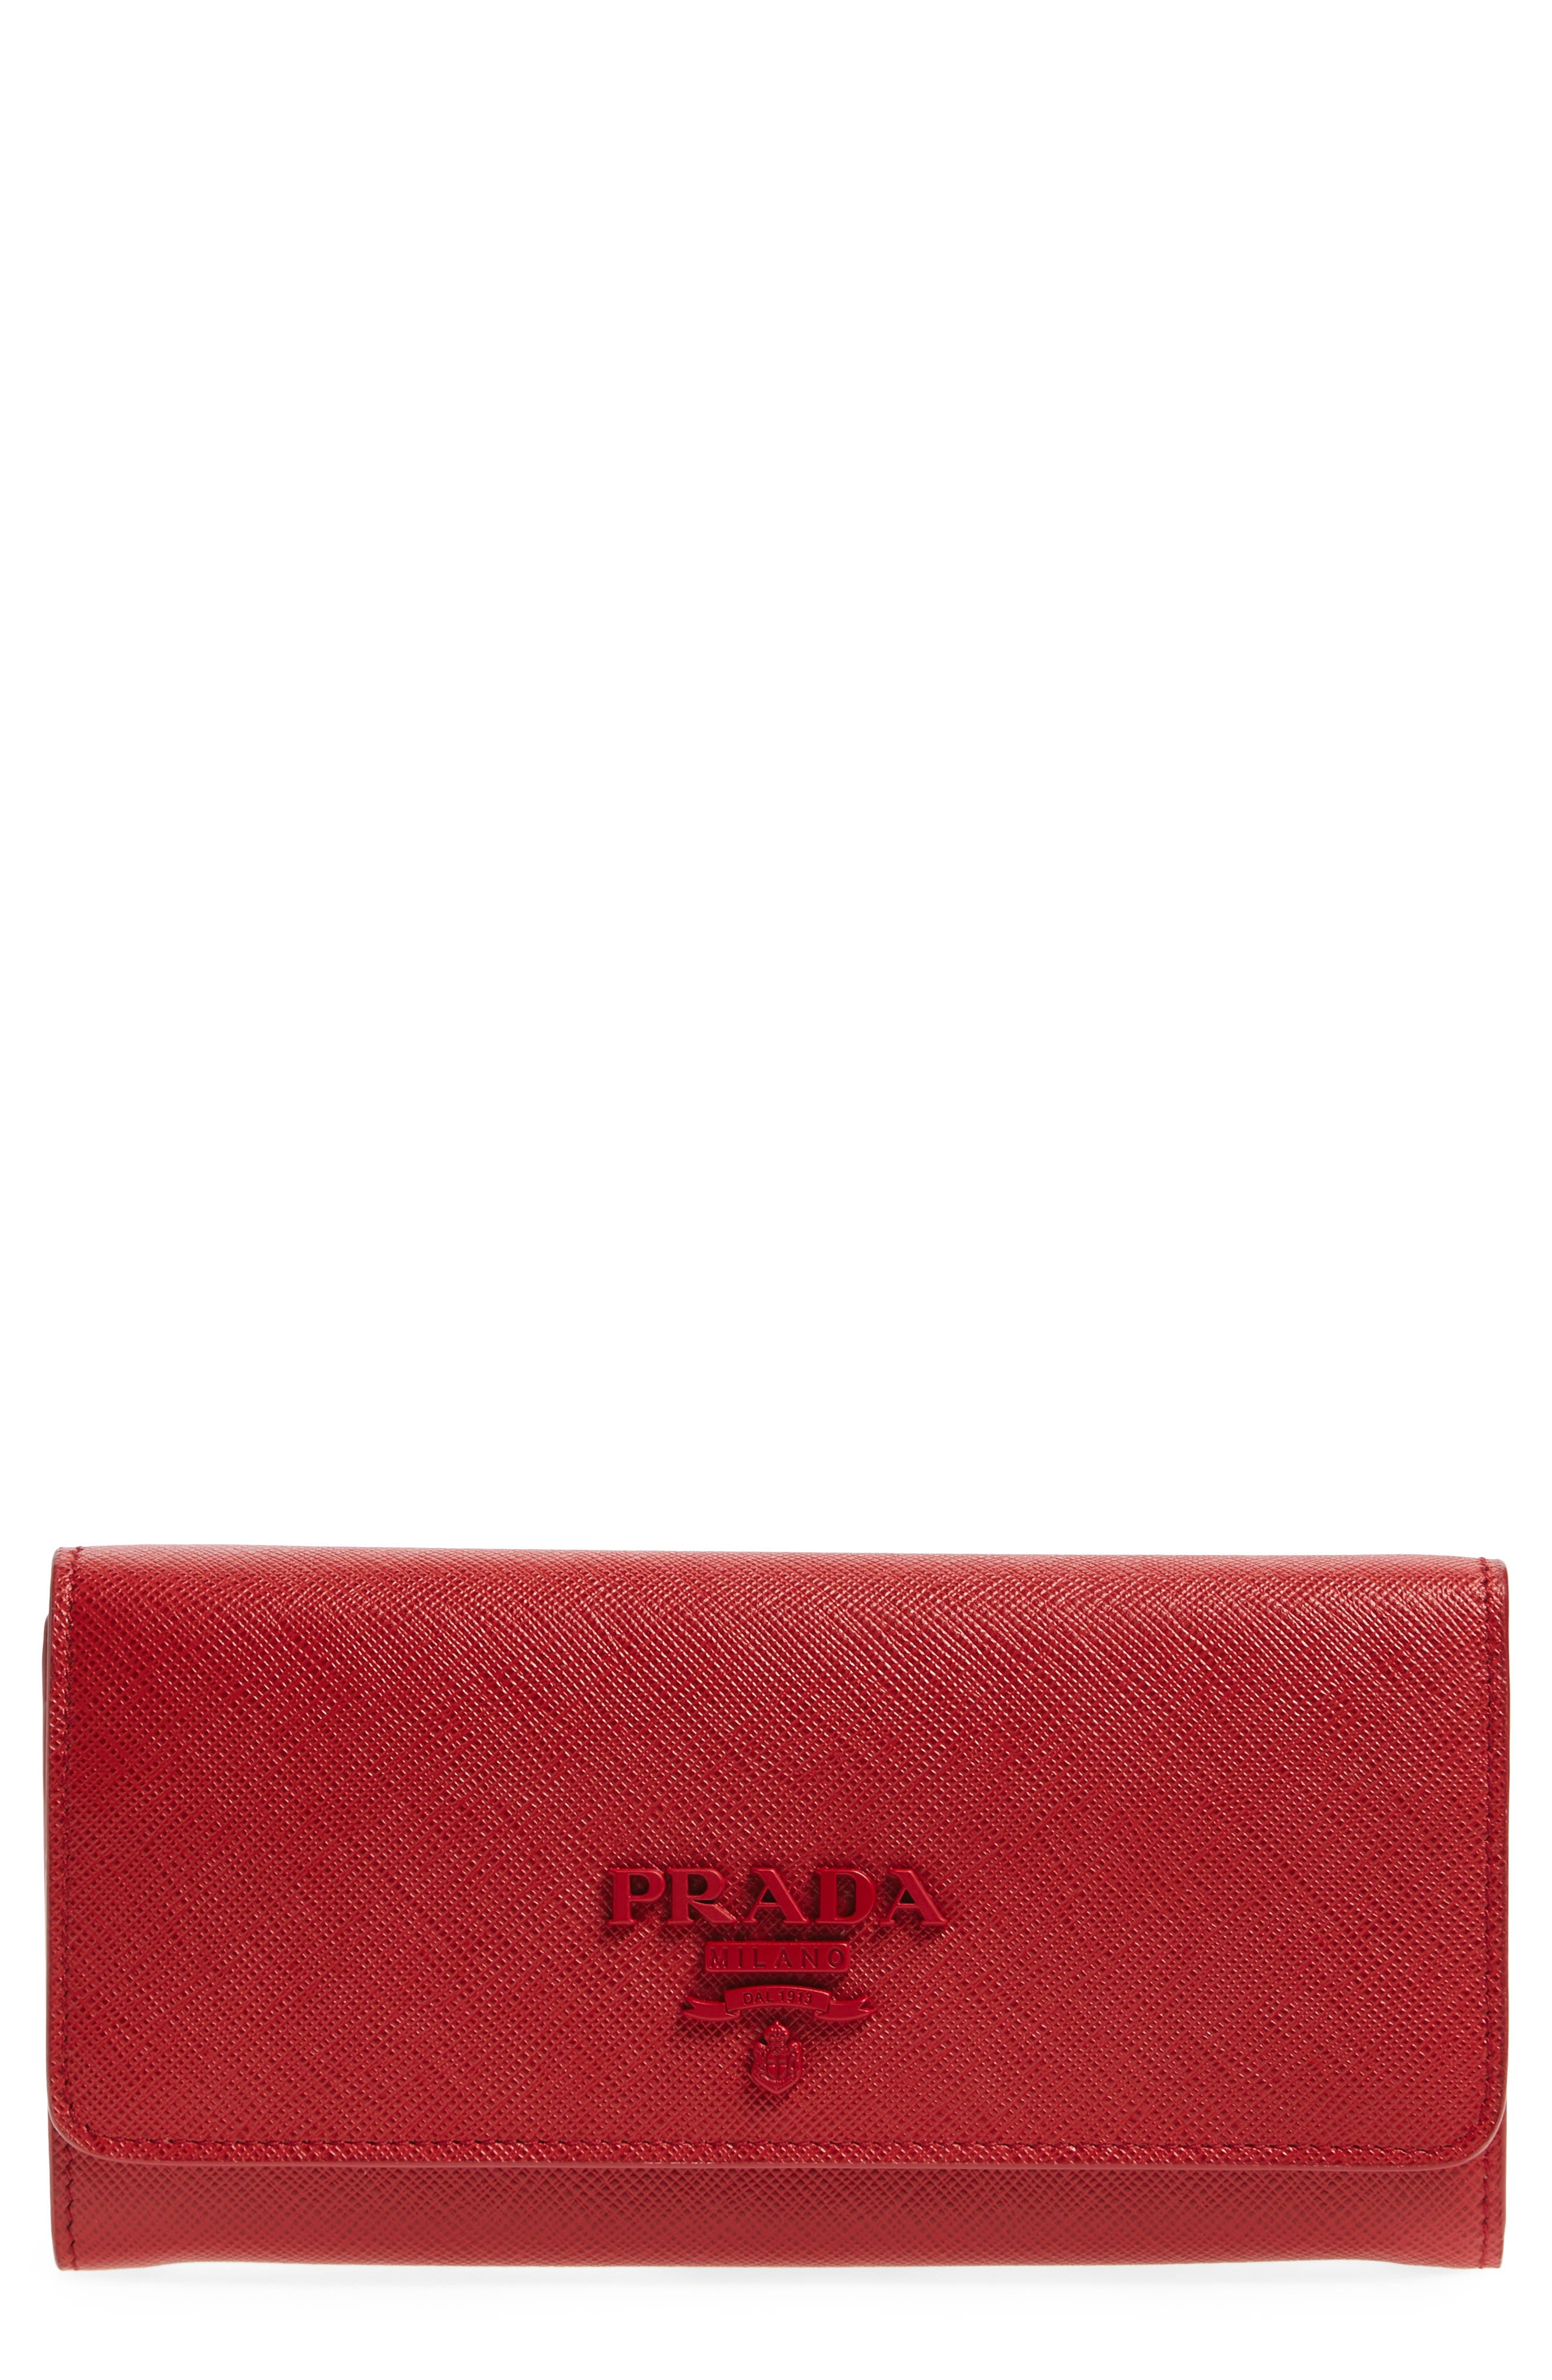 Saffiano Leather Wallet,                         Main,                         color, Fuoco